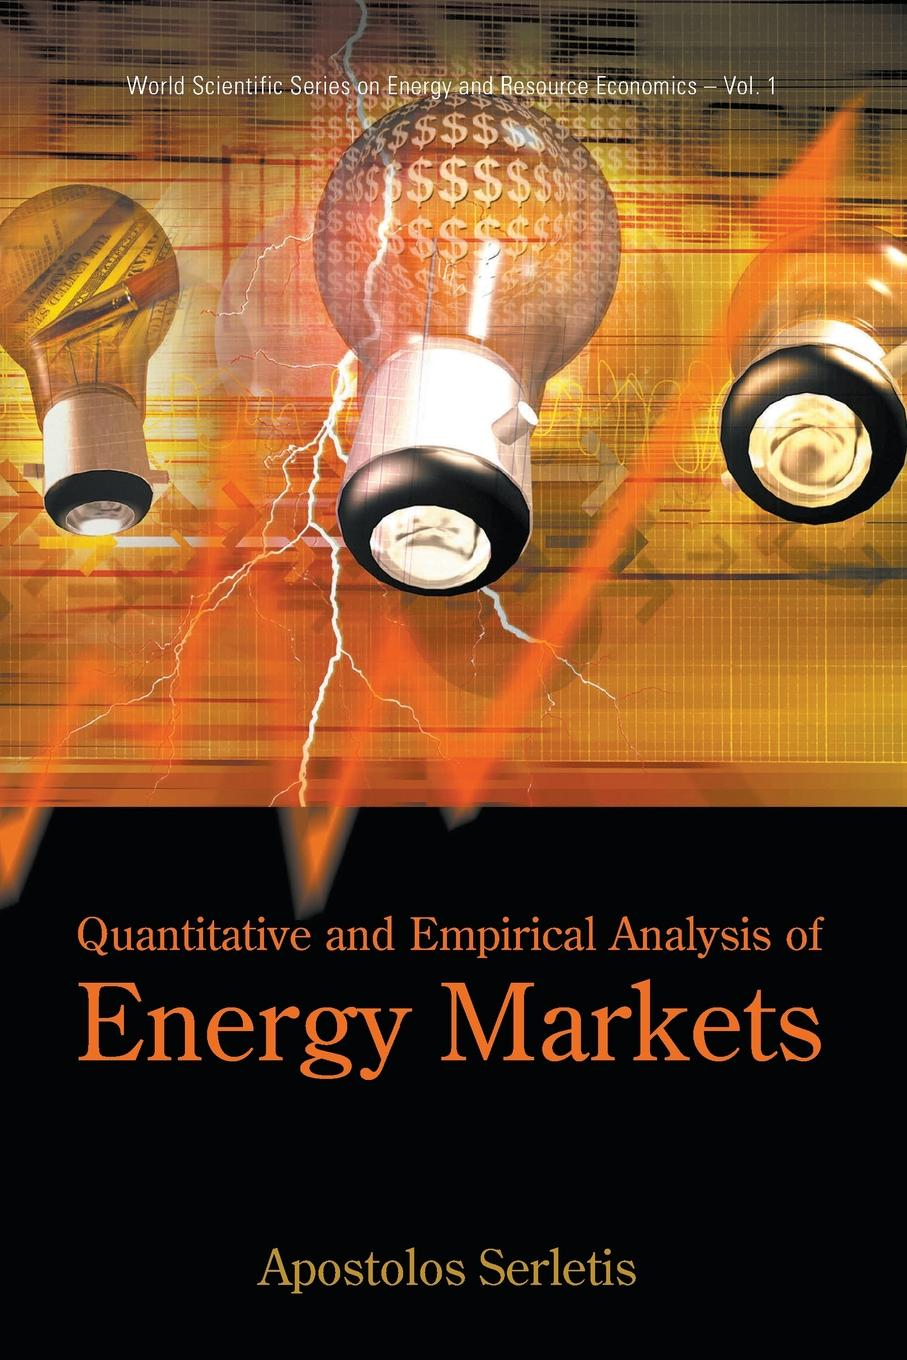 Apostolos Serletis QUANTITATIVE AND EMPIRICAL ANALYSIS OF ENERGY MARKETS t omay energy consumption and economic growth evidence from nonlinear panel cointegration and causality tests